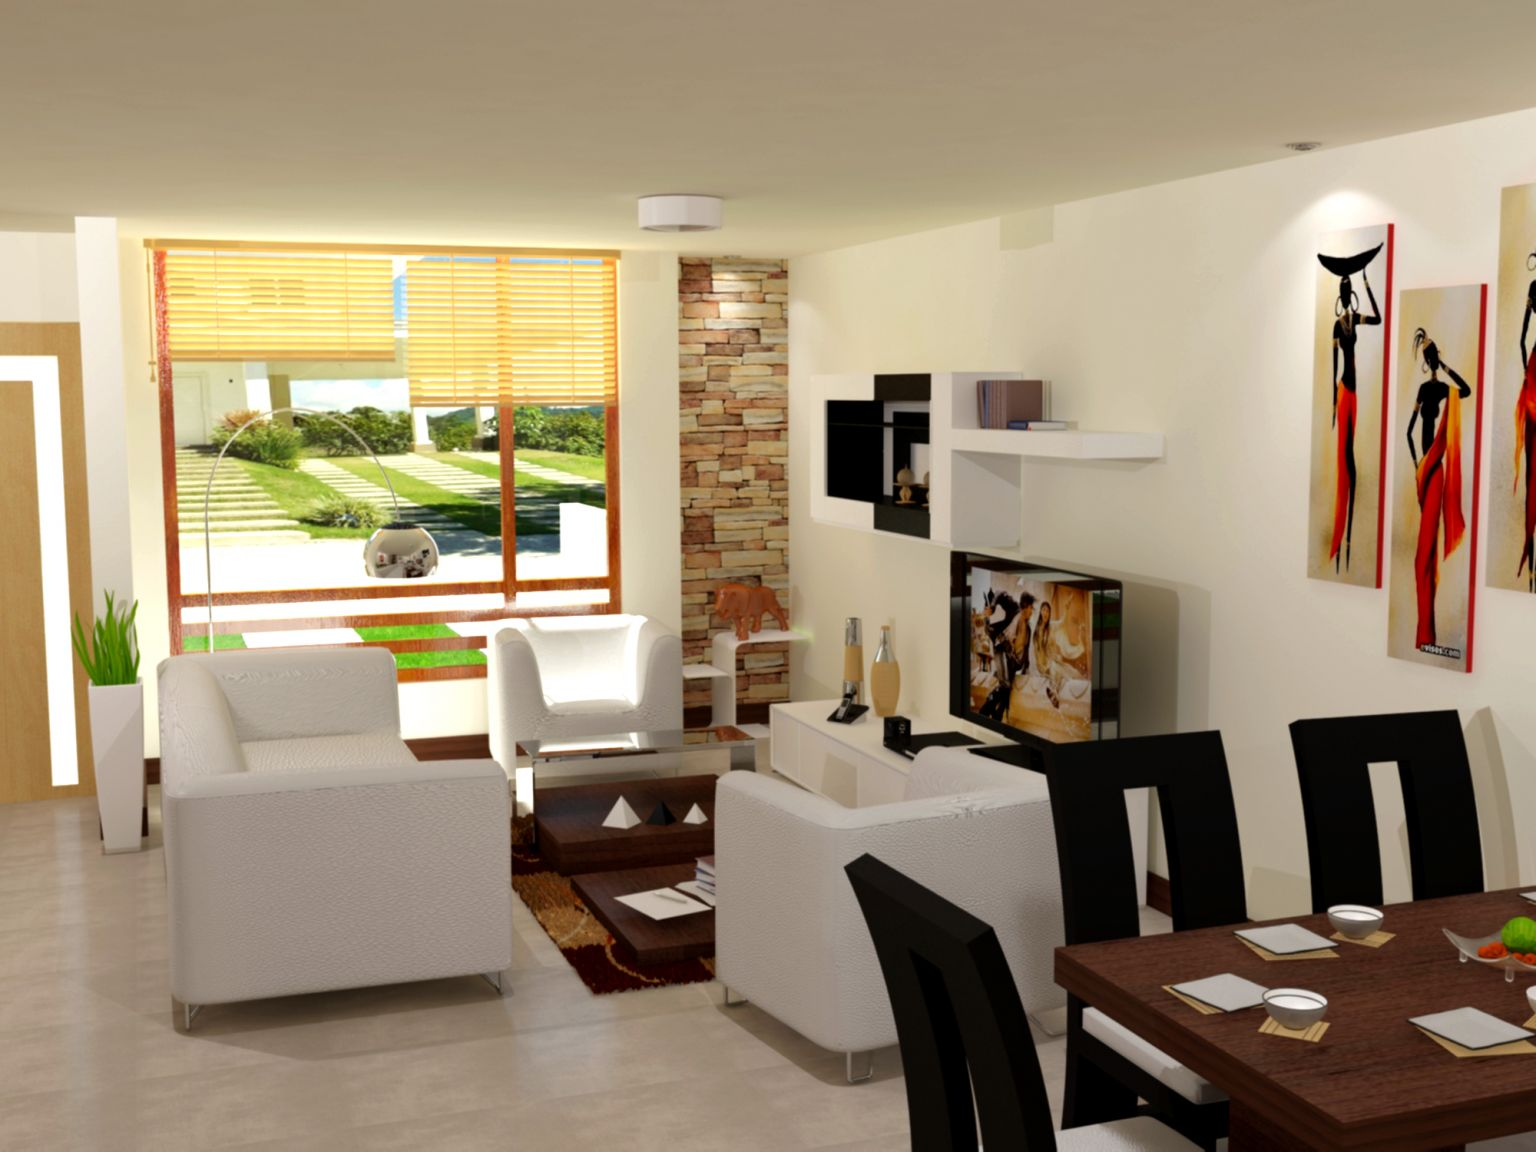 Decoracion De Interiores Ideas Para Decorar Trucos Para Decorar Tu Nueva Casa Bienes Raices Inmohogar